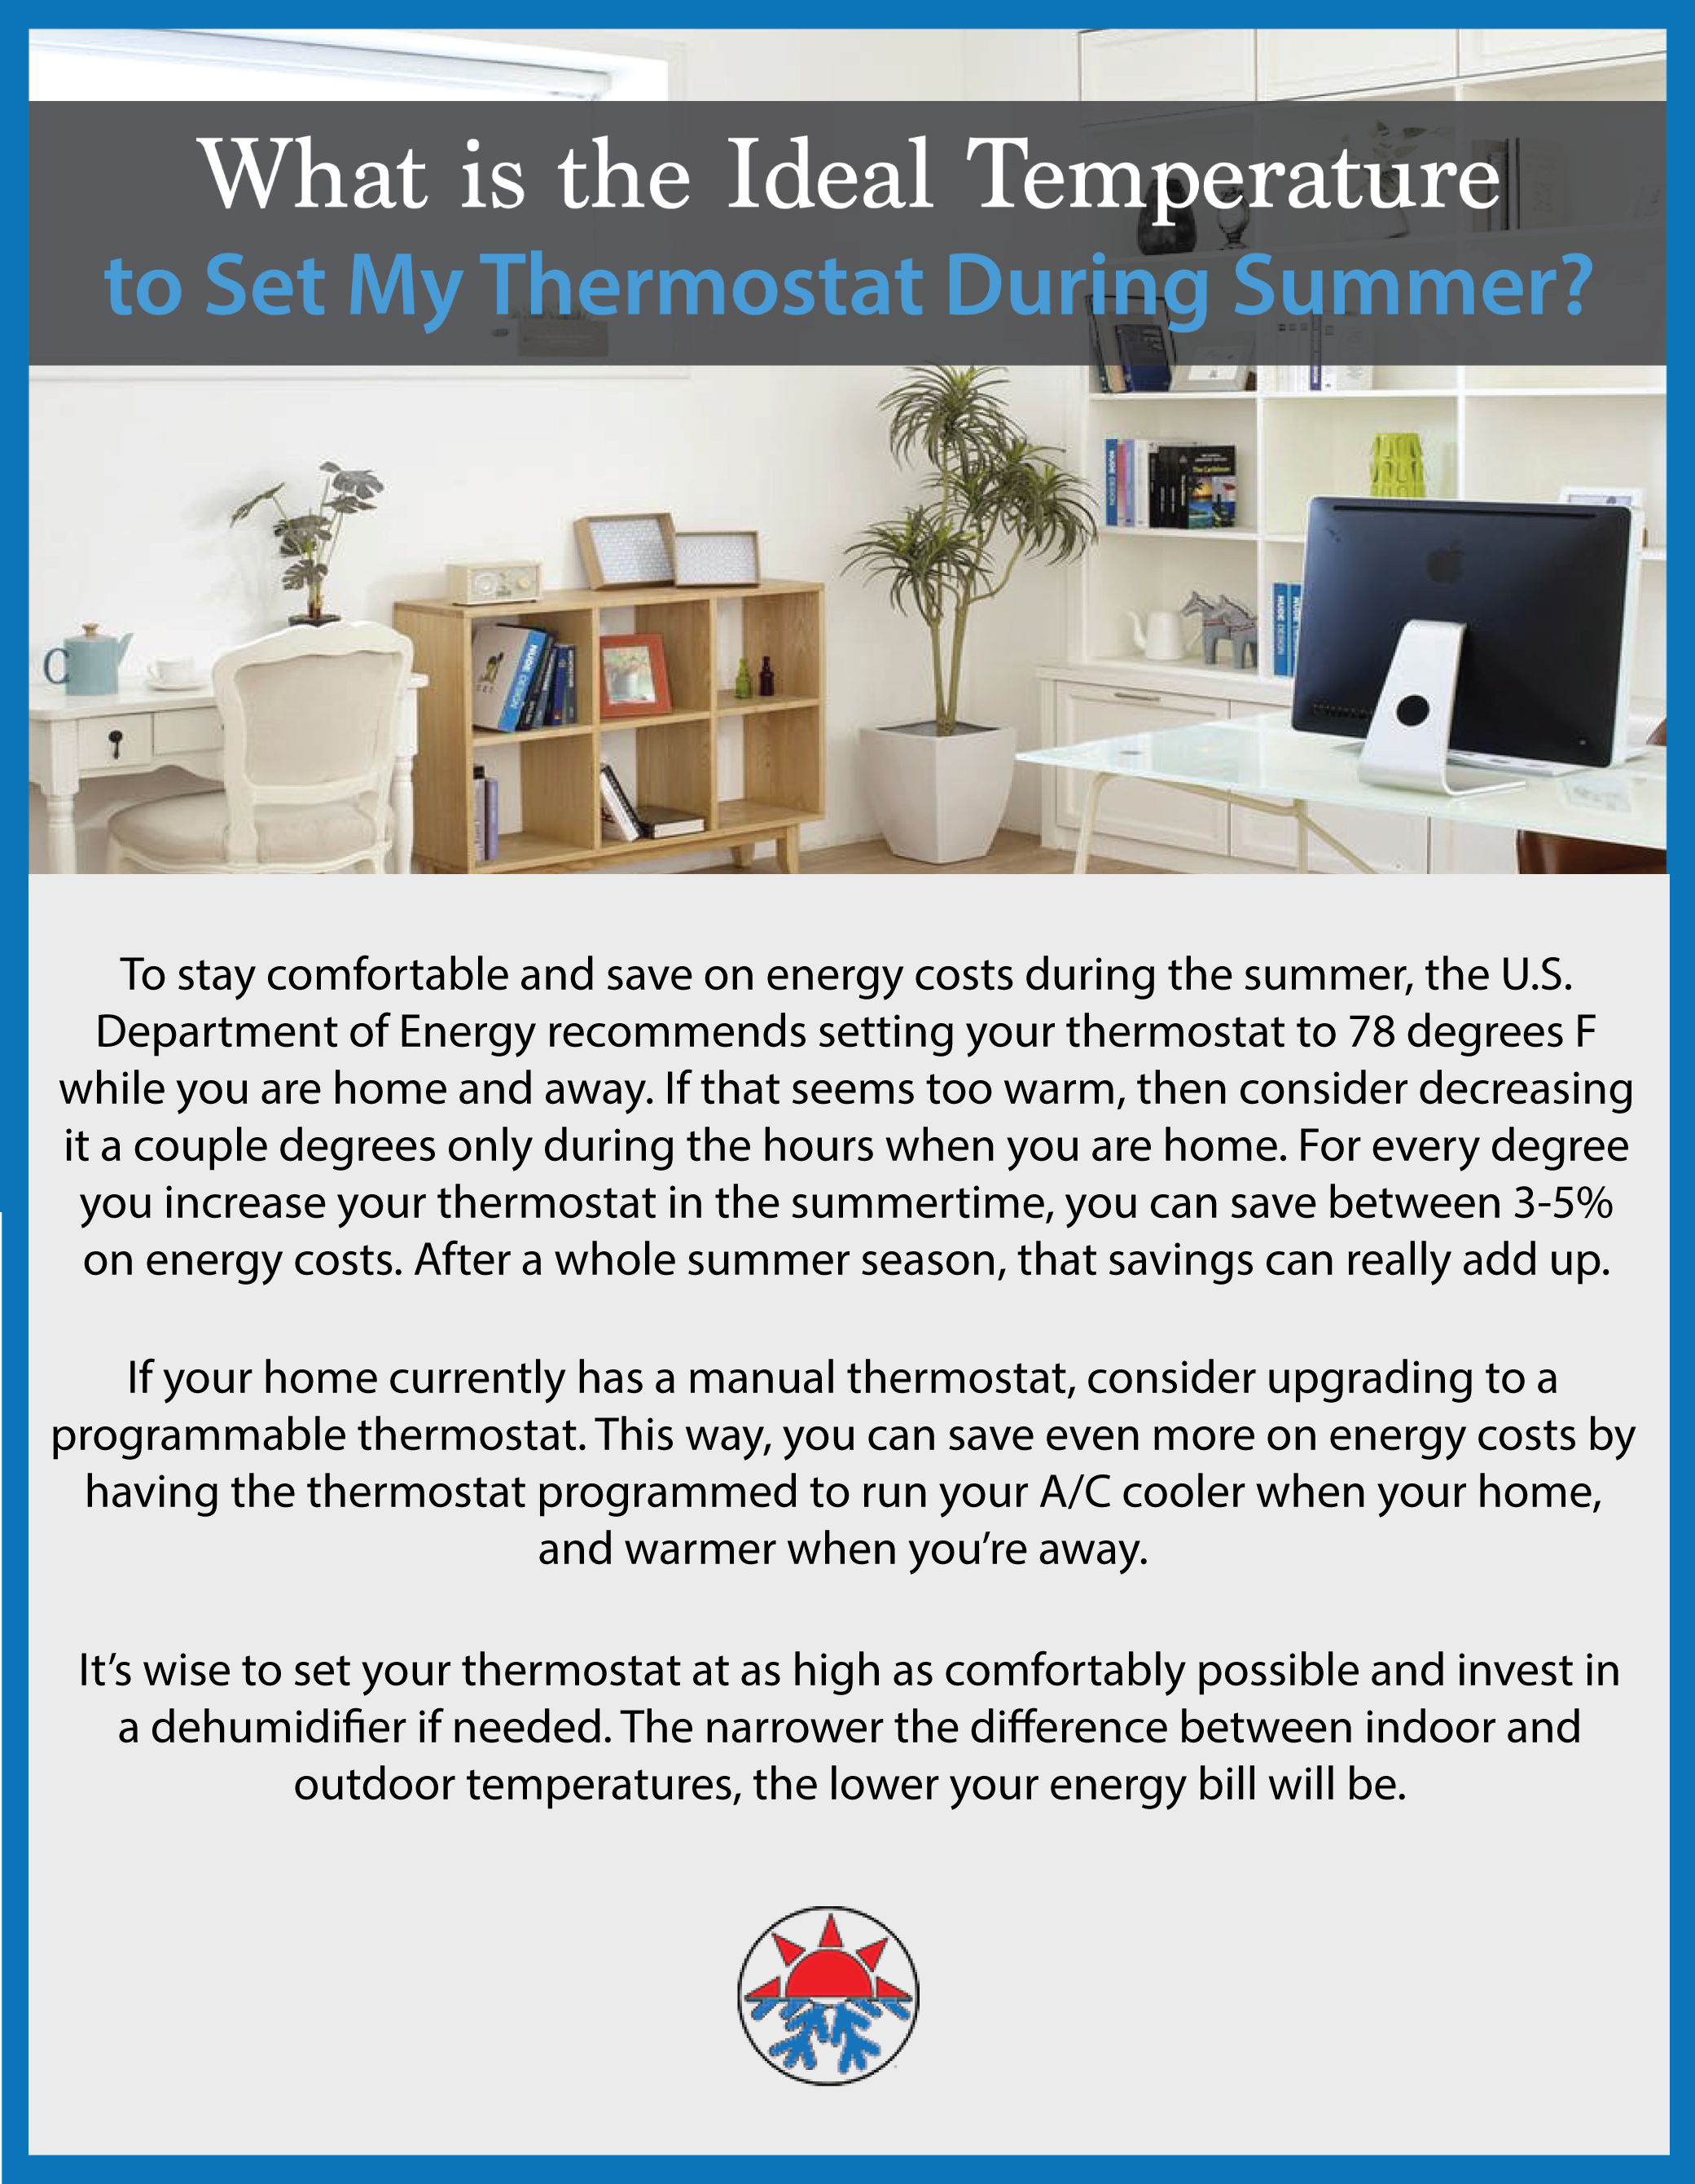 Ideal Temperature Thermostat During Summer